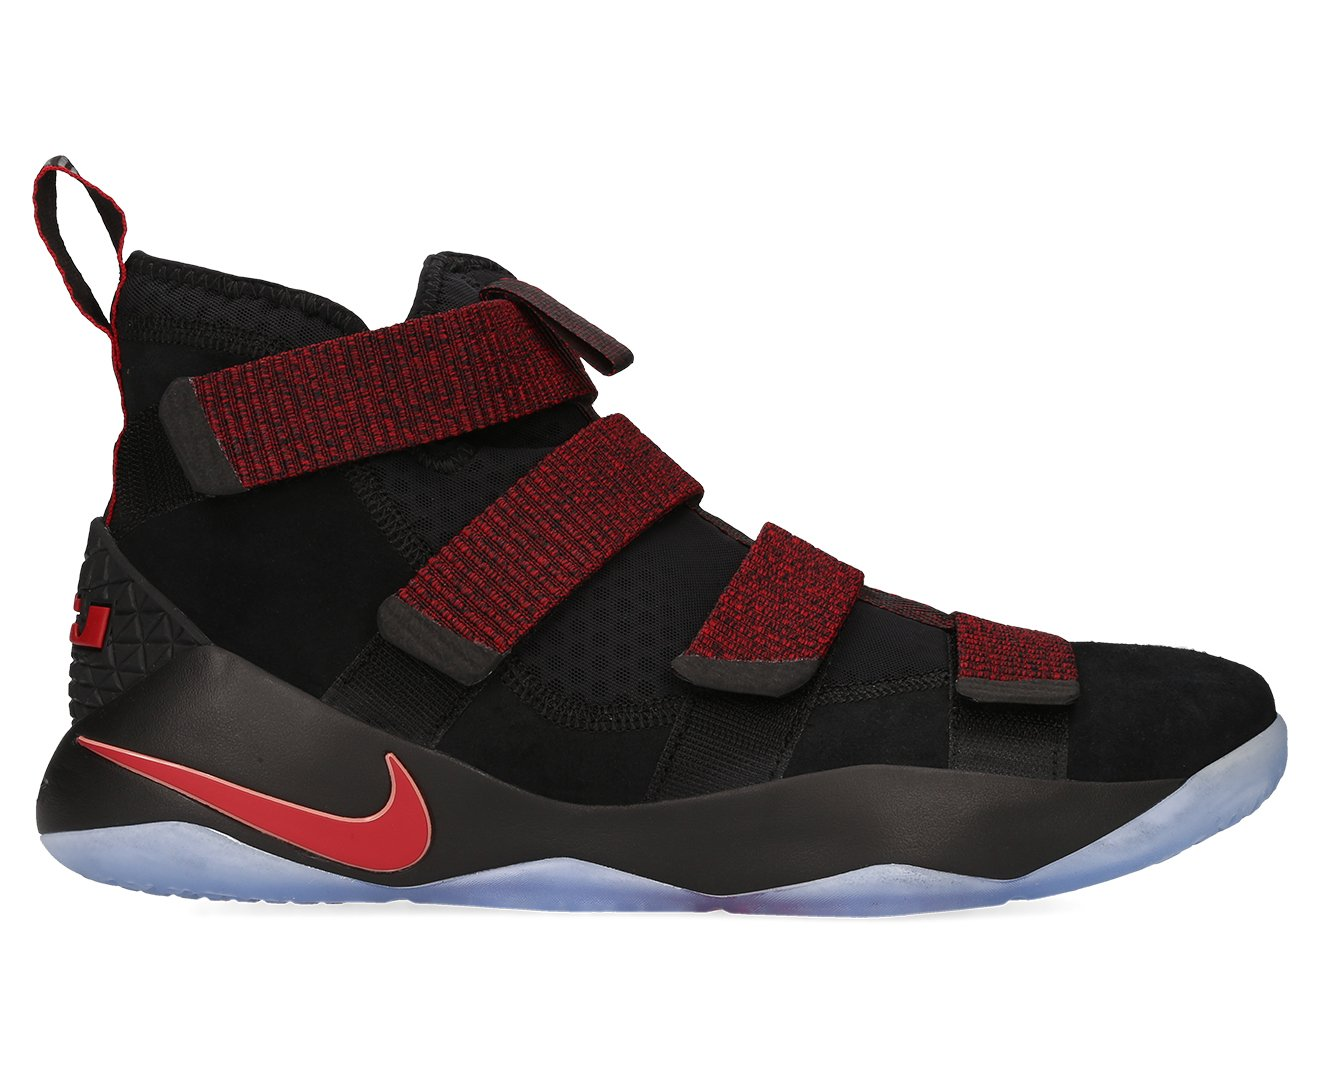 a412fdf09ef Galleon - NIKE Men s Lebron Soldier XI Shoe Black Team Red Size 9 M US